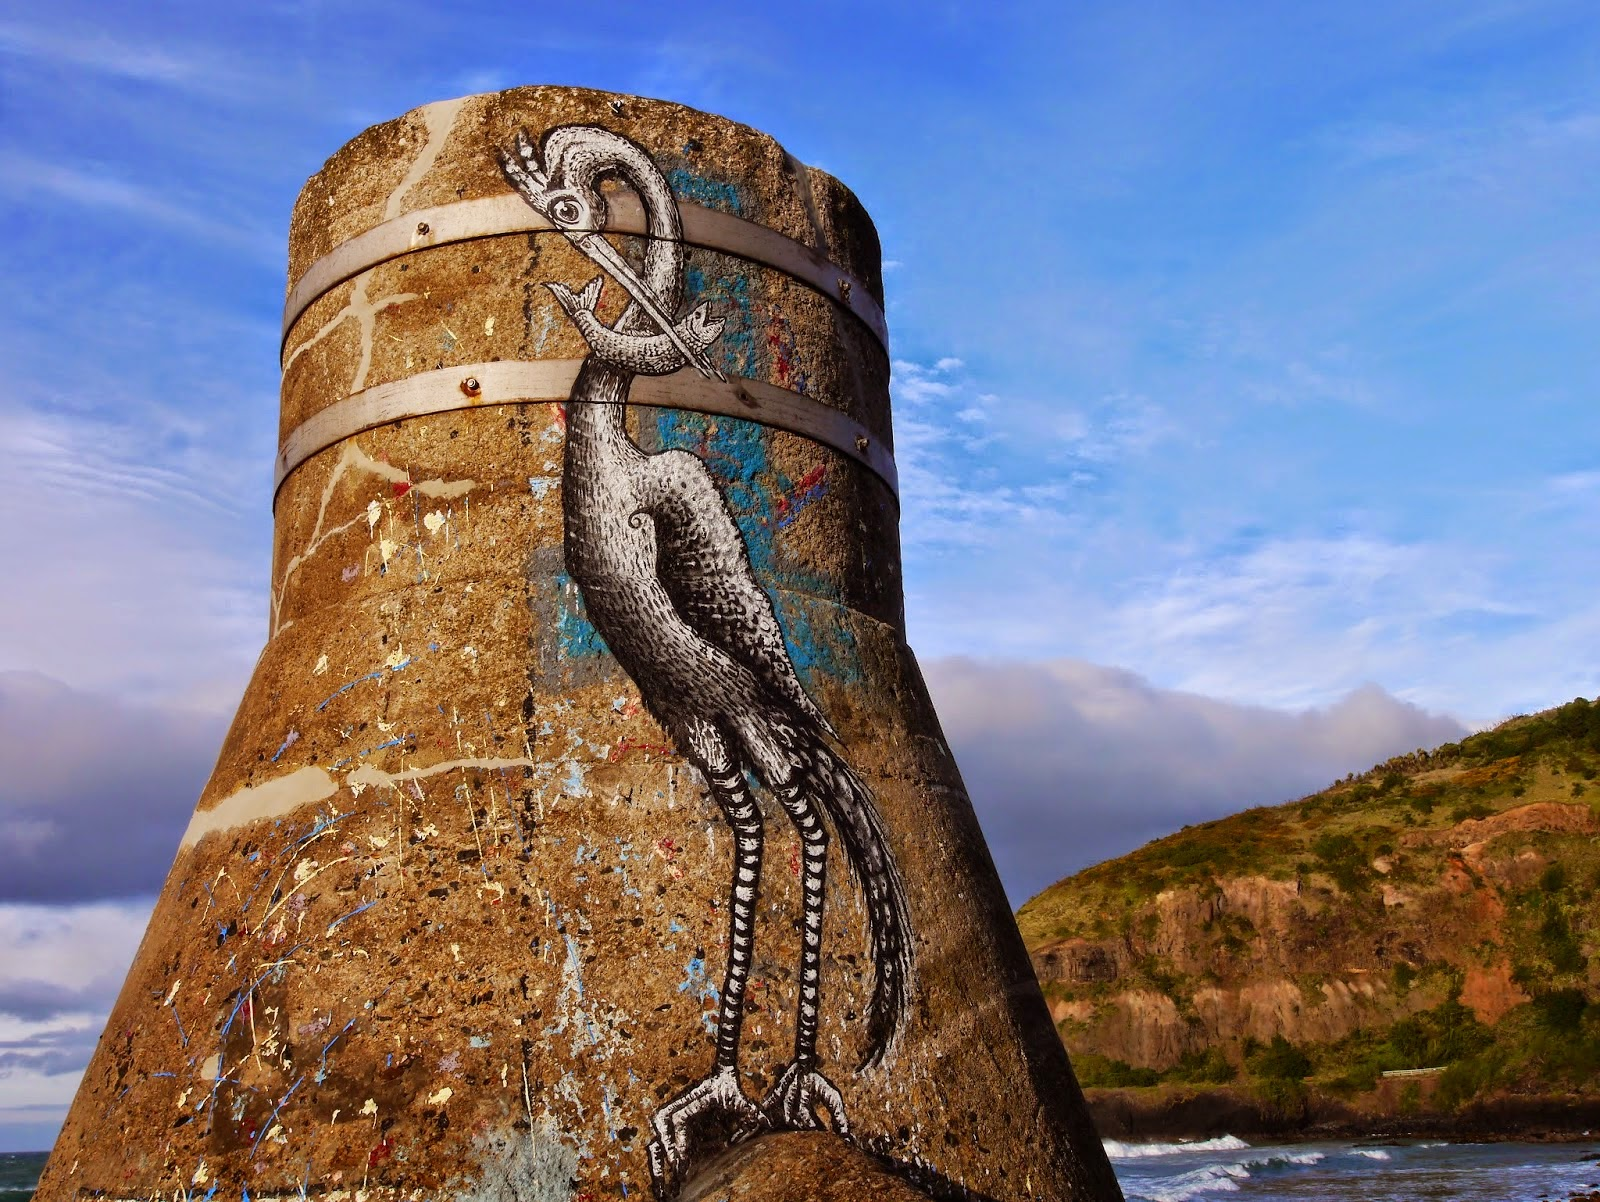 Before leaving New Zealand, Phlegm managed to drop a quick piece on the Second Beach in Saint Claire, Dunedin.